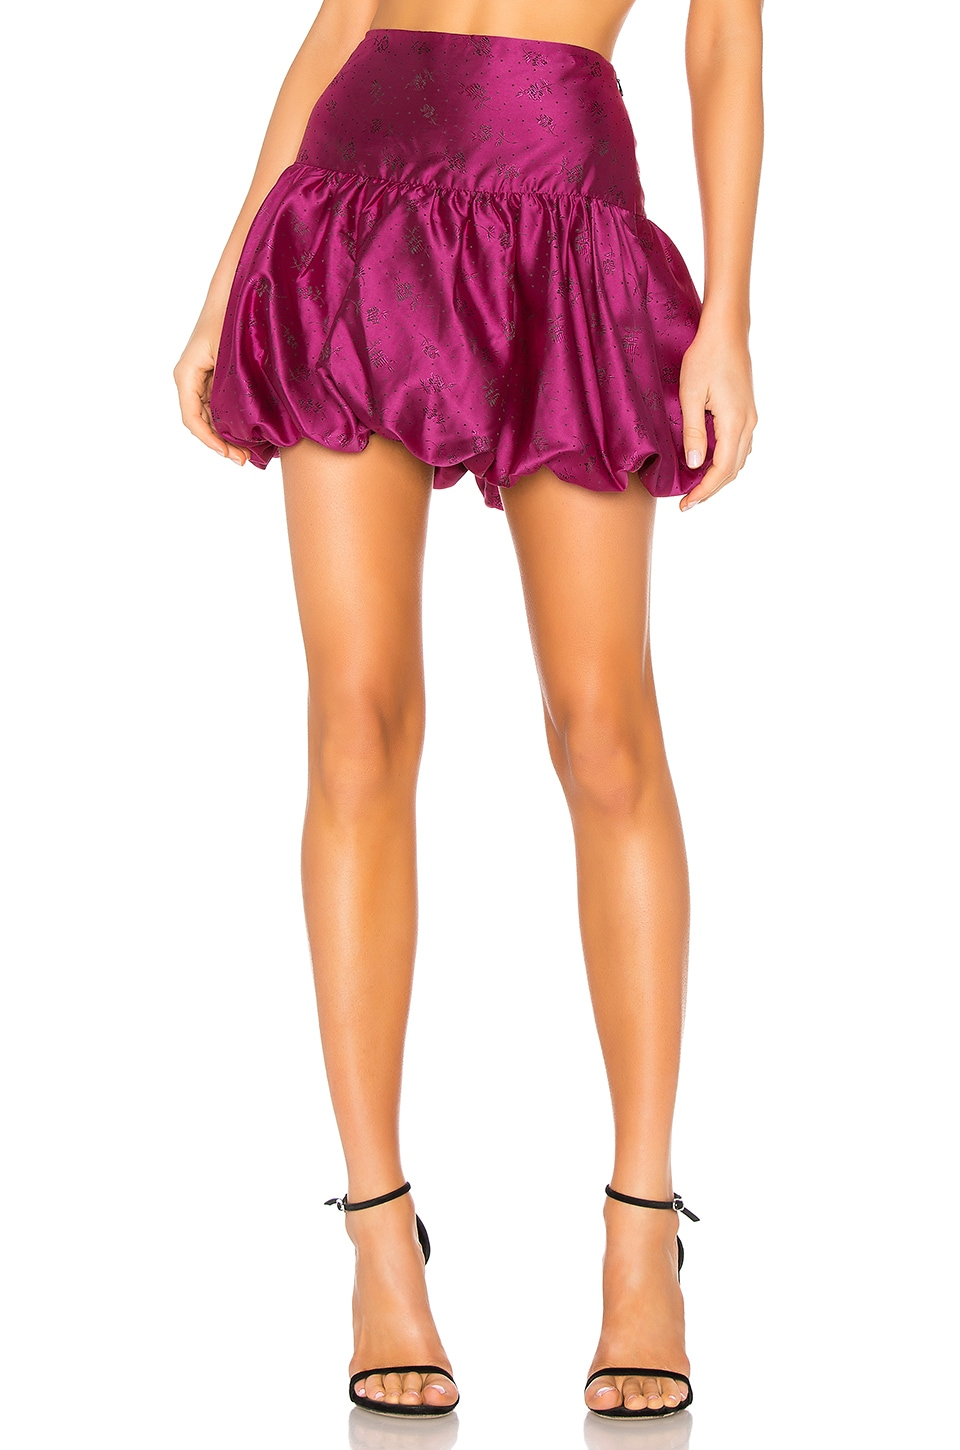 MAJORELLE Elena Mini Skirt in Fuchsia Pink